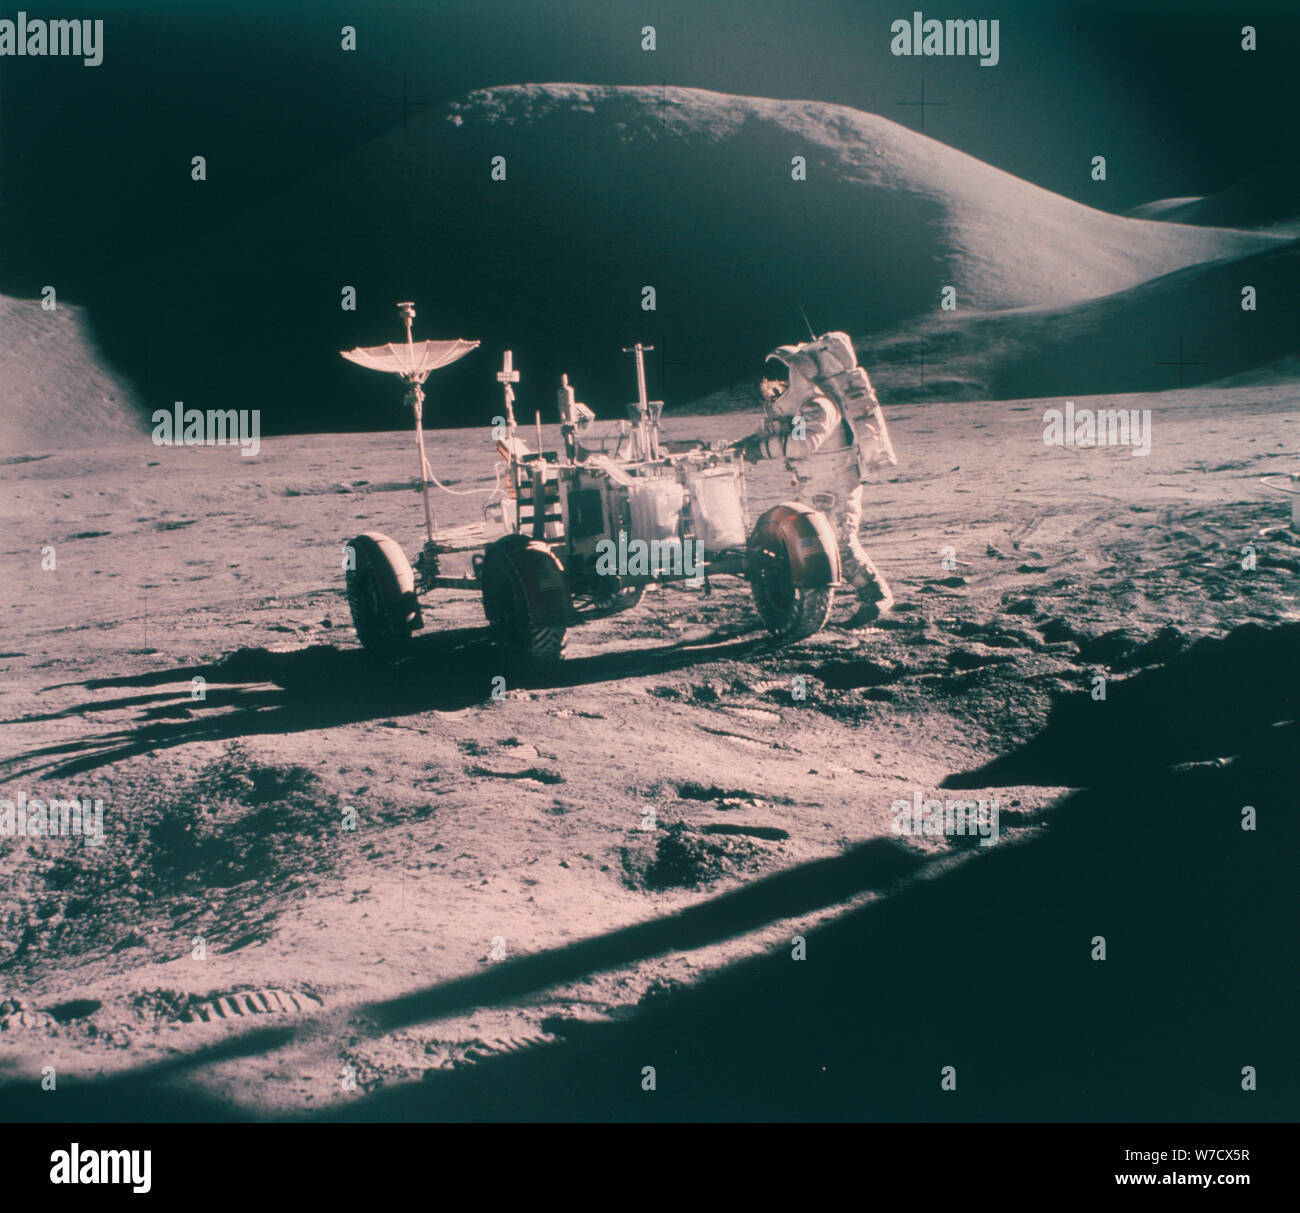 NASA 1970 Apollo 15 Moon Mission First Use Lunar Rover Art Print Poster Space